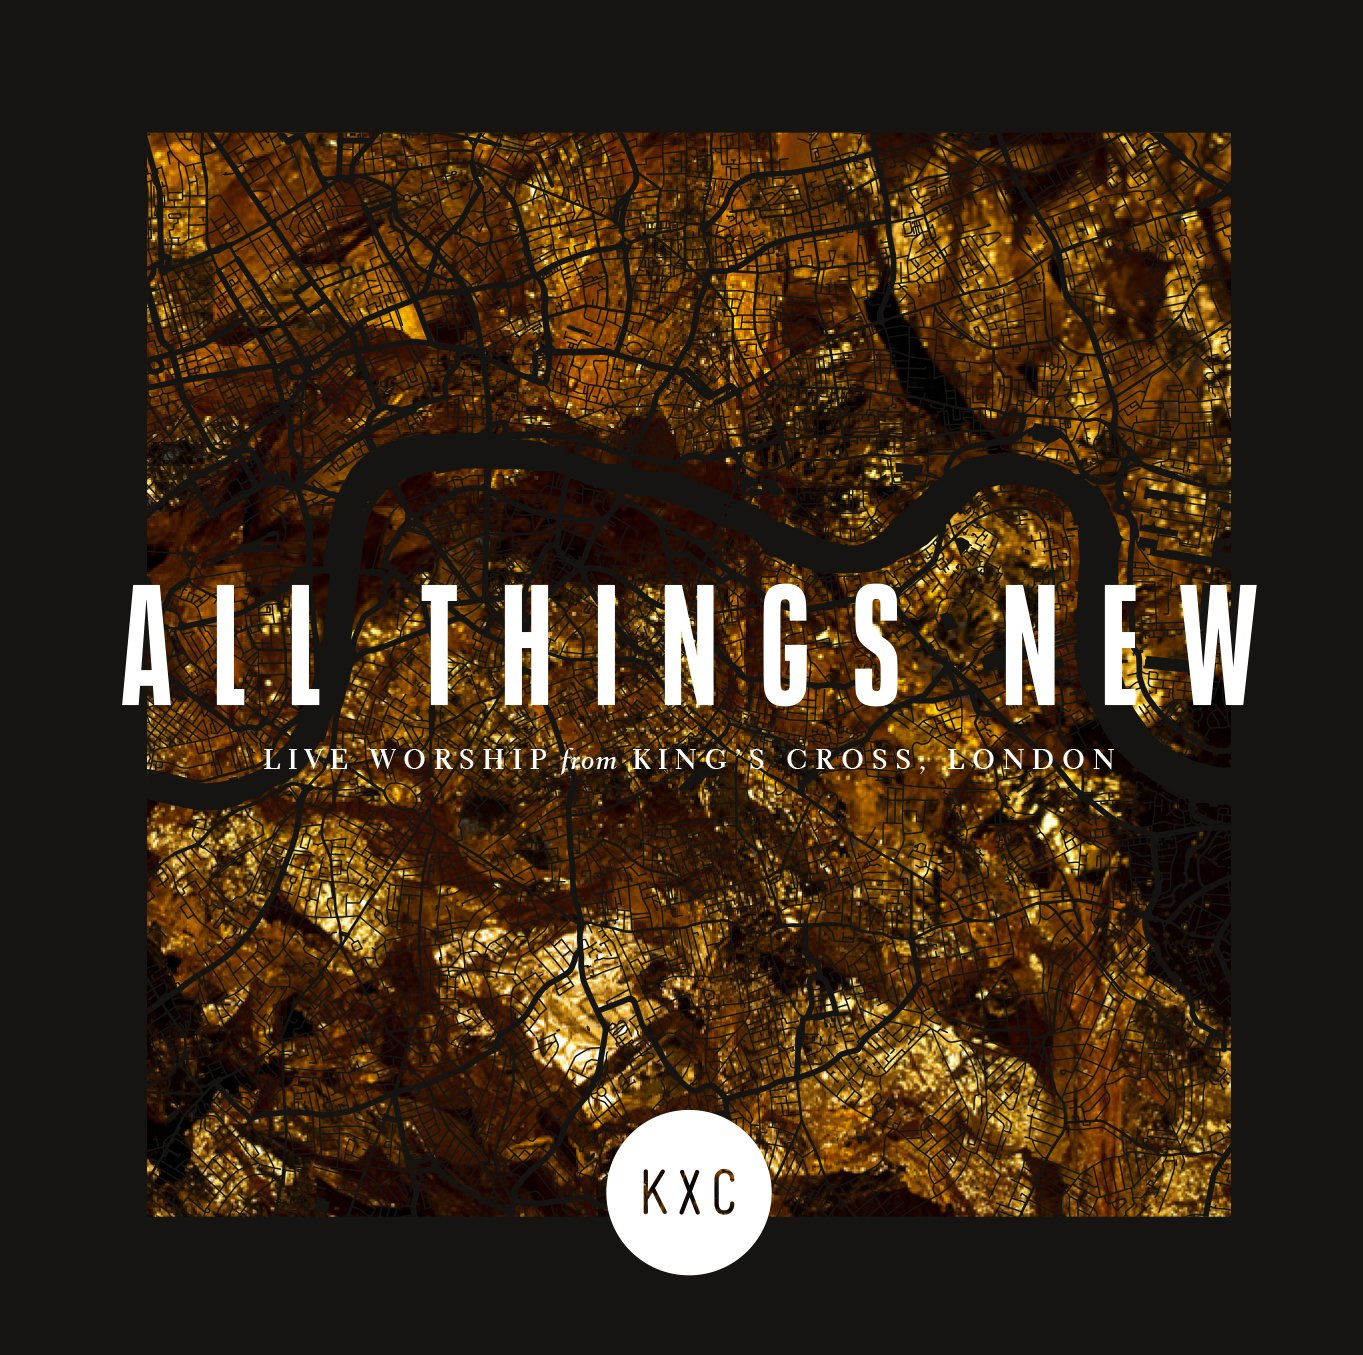 More information on All Things New: Live Worship From King's Cross, London CD